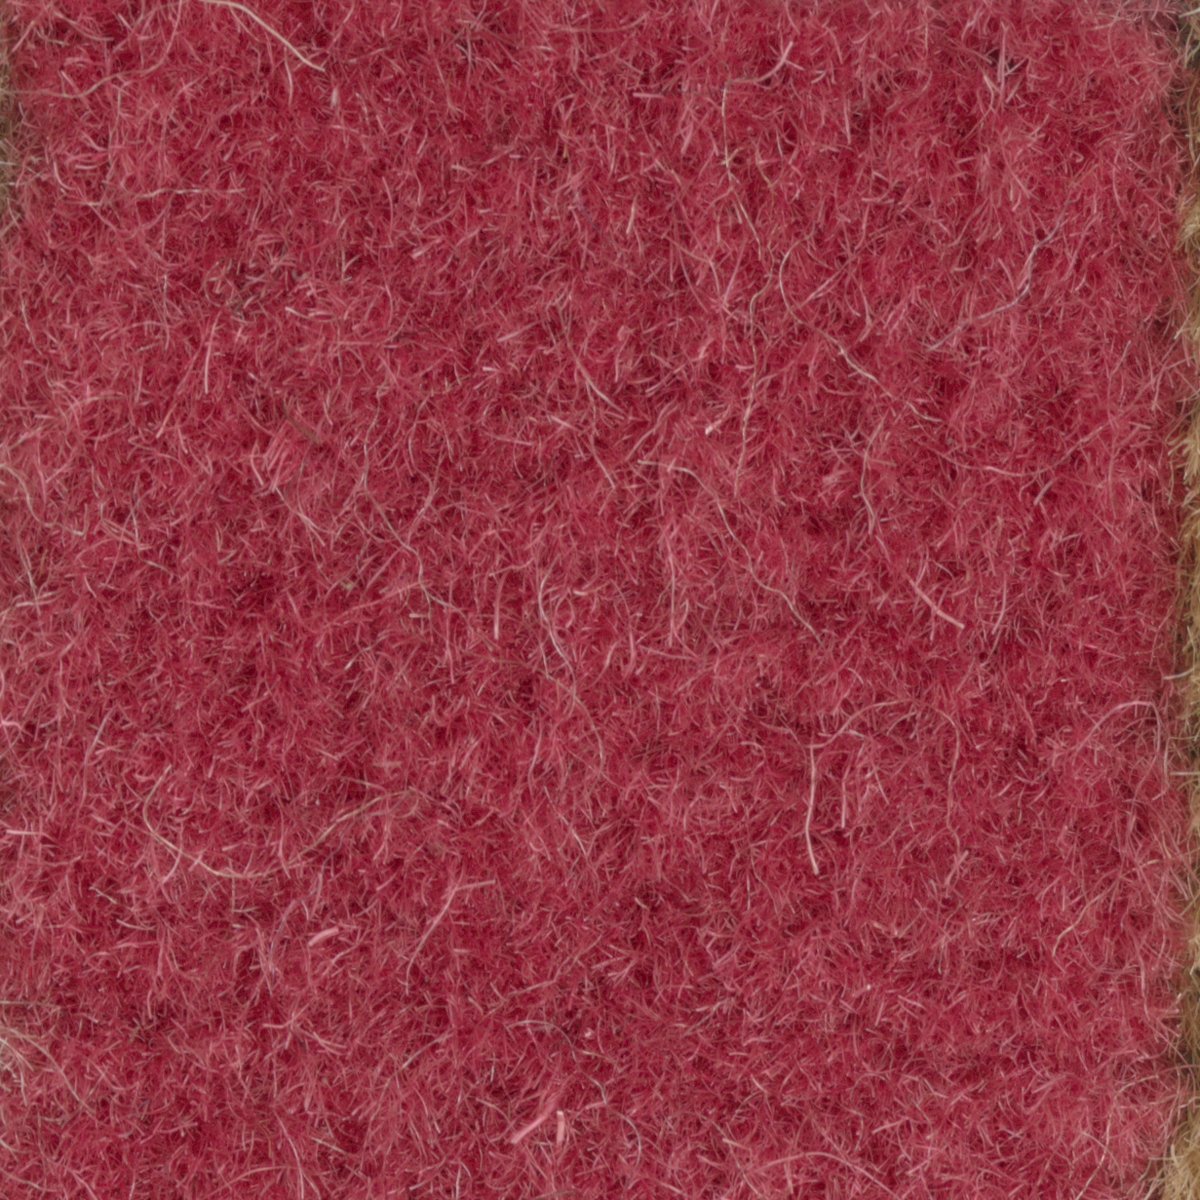 WINE ENGLISH WILTON II WOOL CARPET